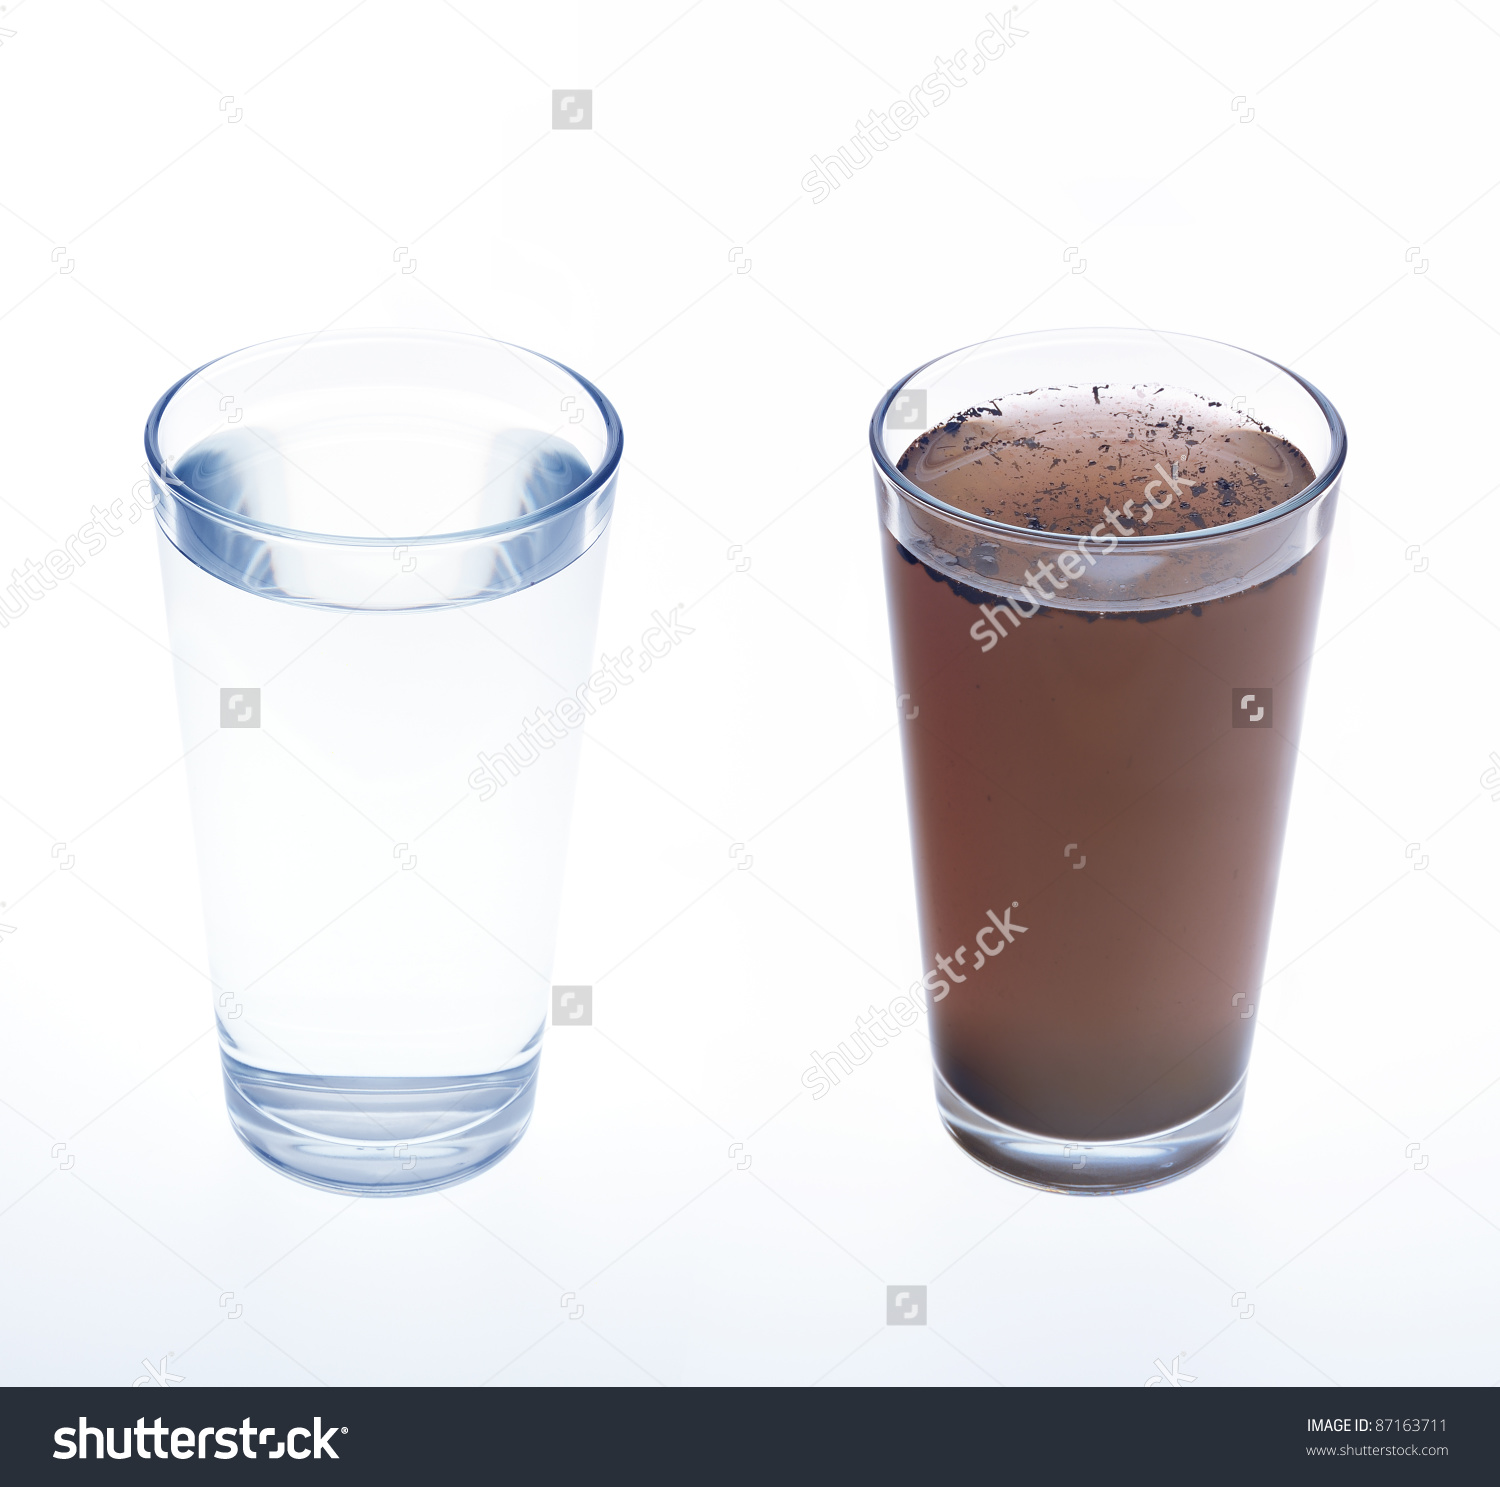 Clean Dirty Water Drinking Glass Concept Stock Photo 87163711.